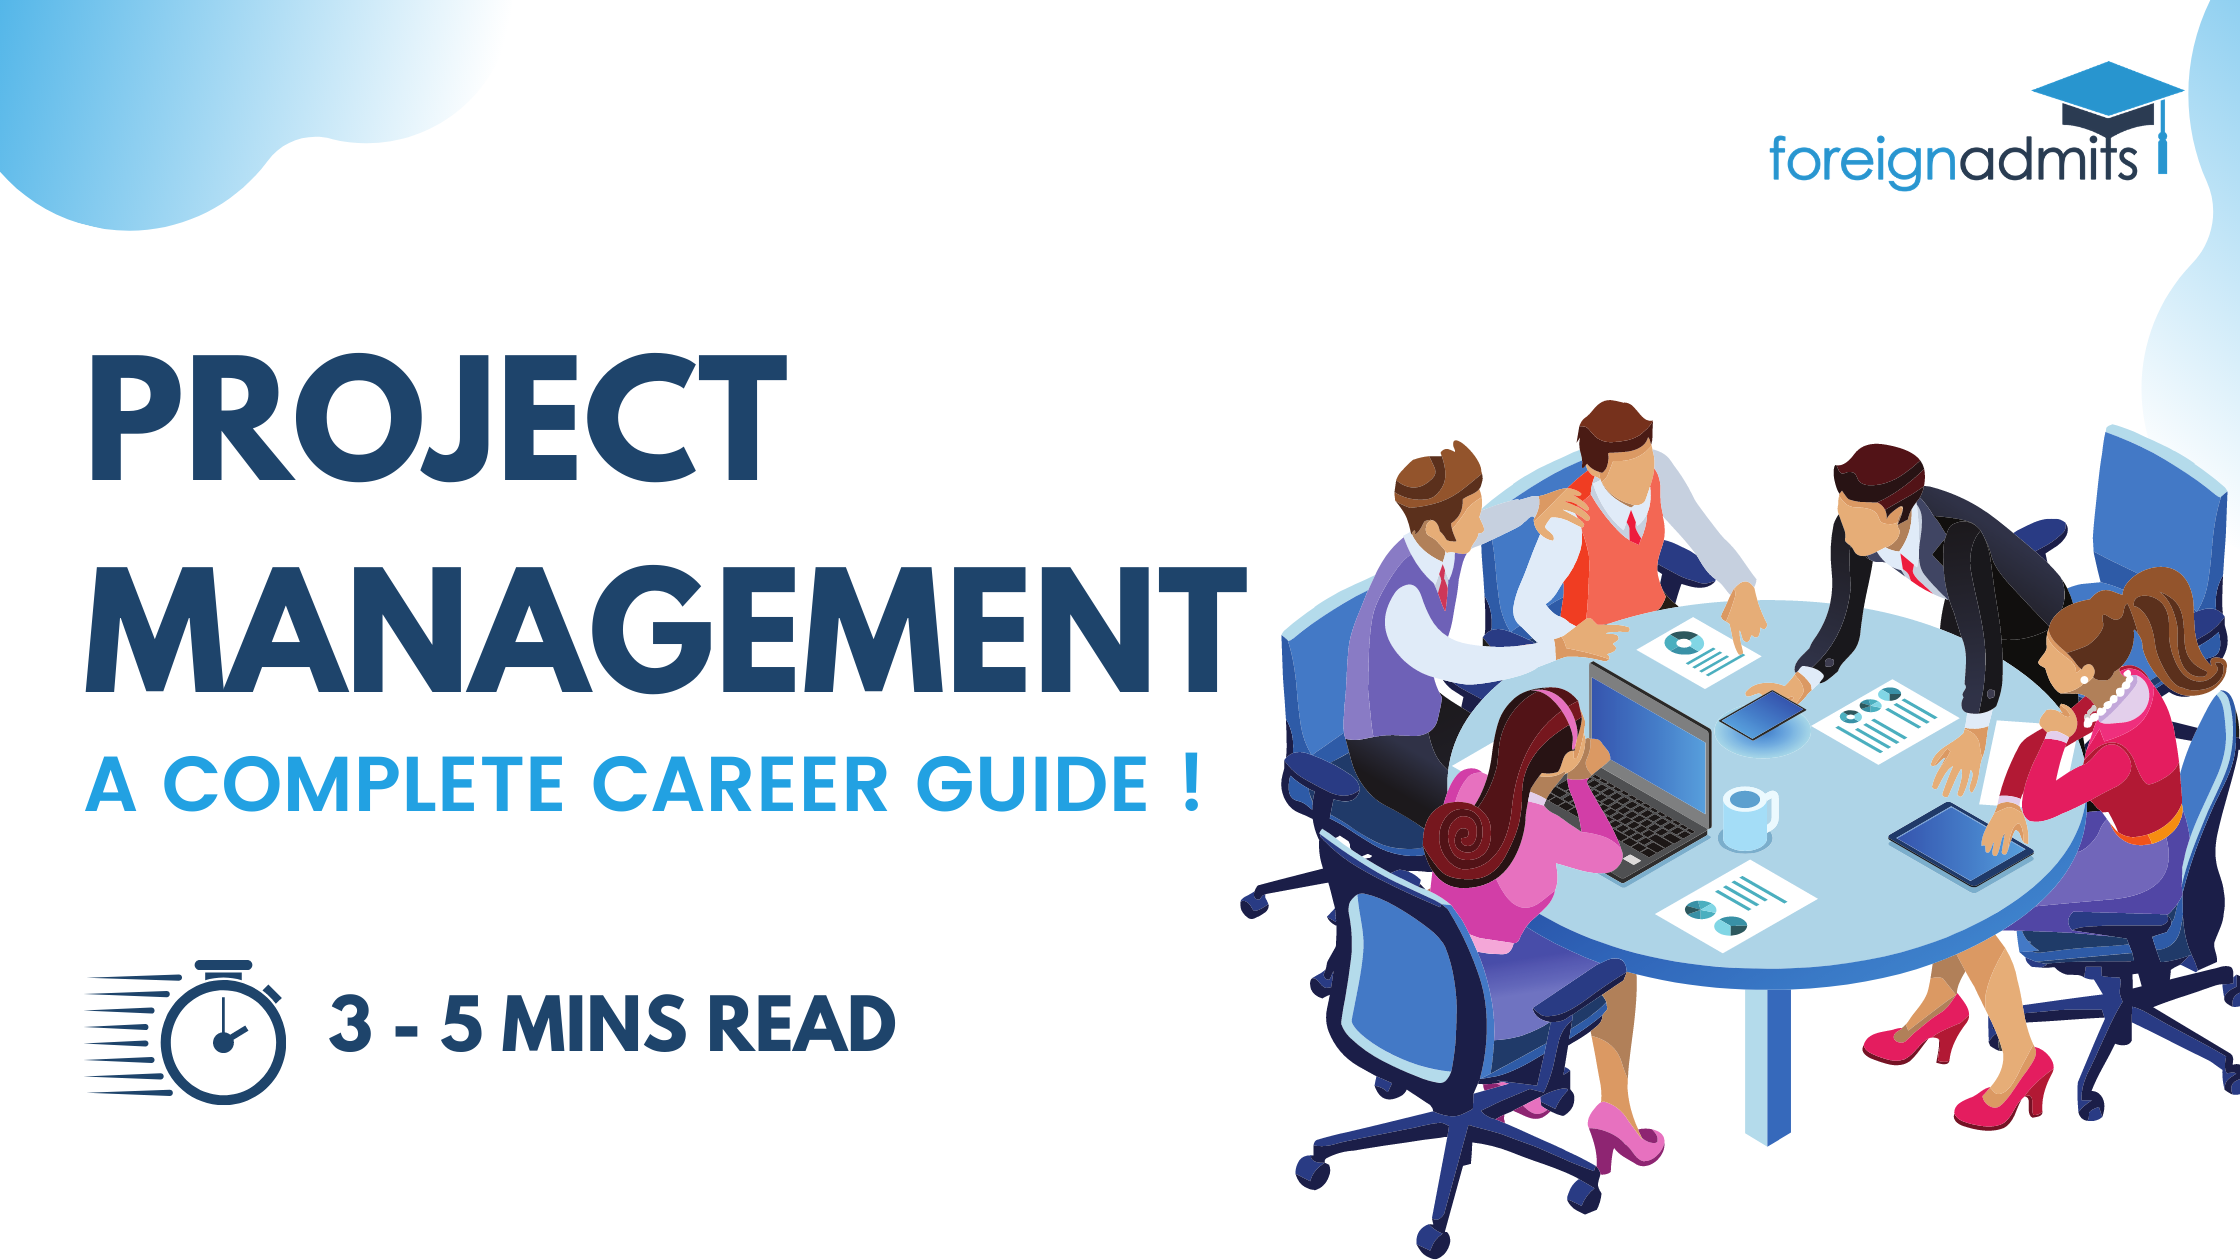 Project Management Complete Career Guide.